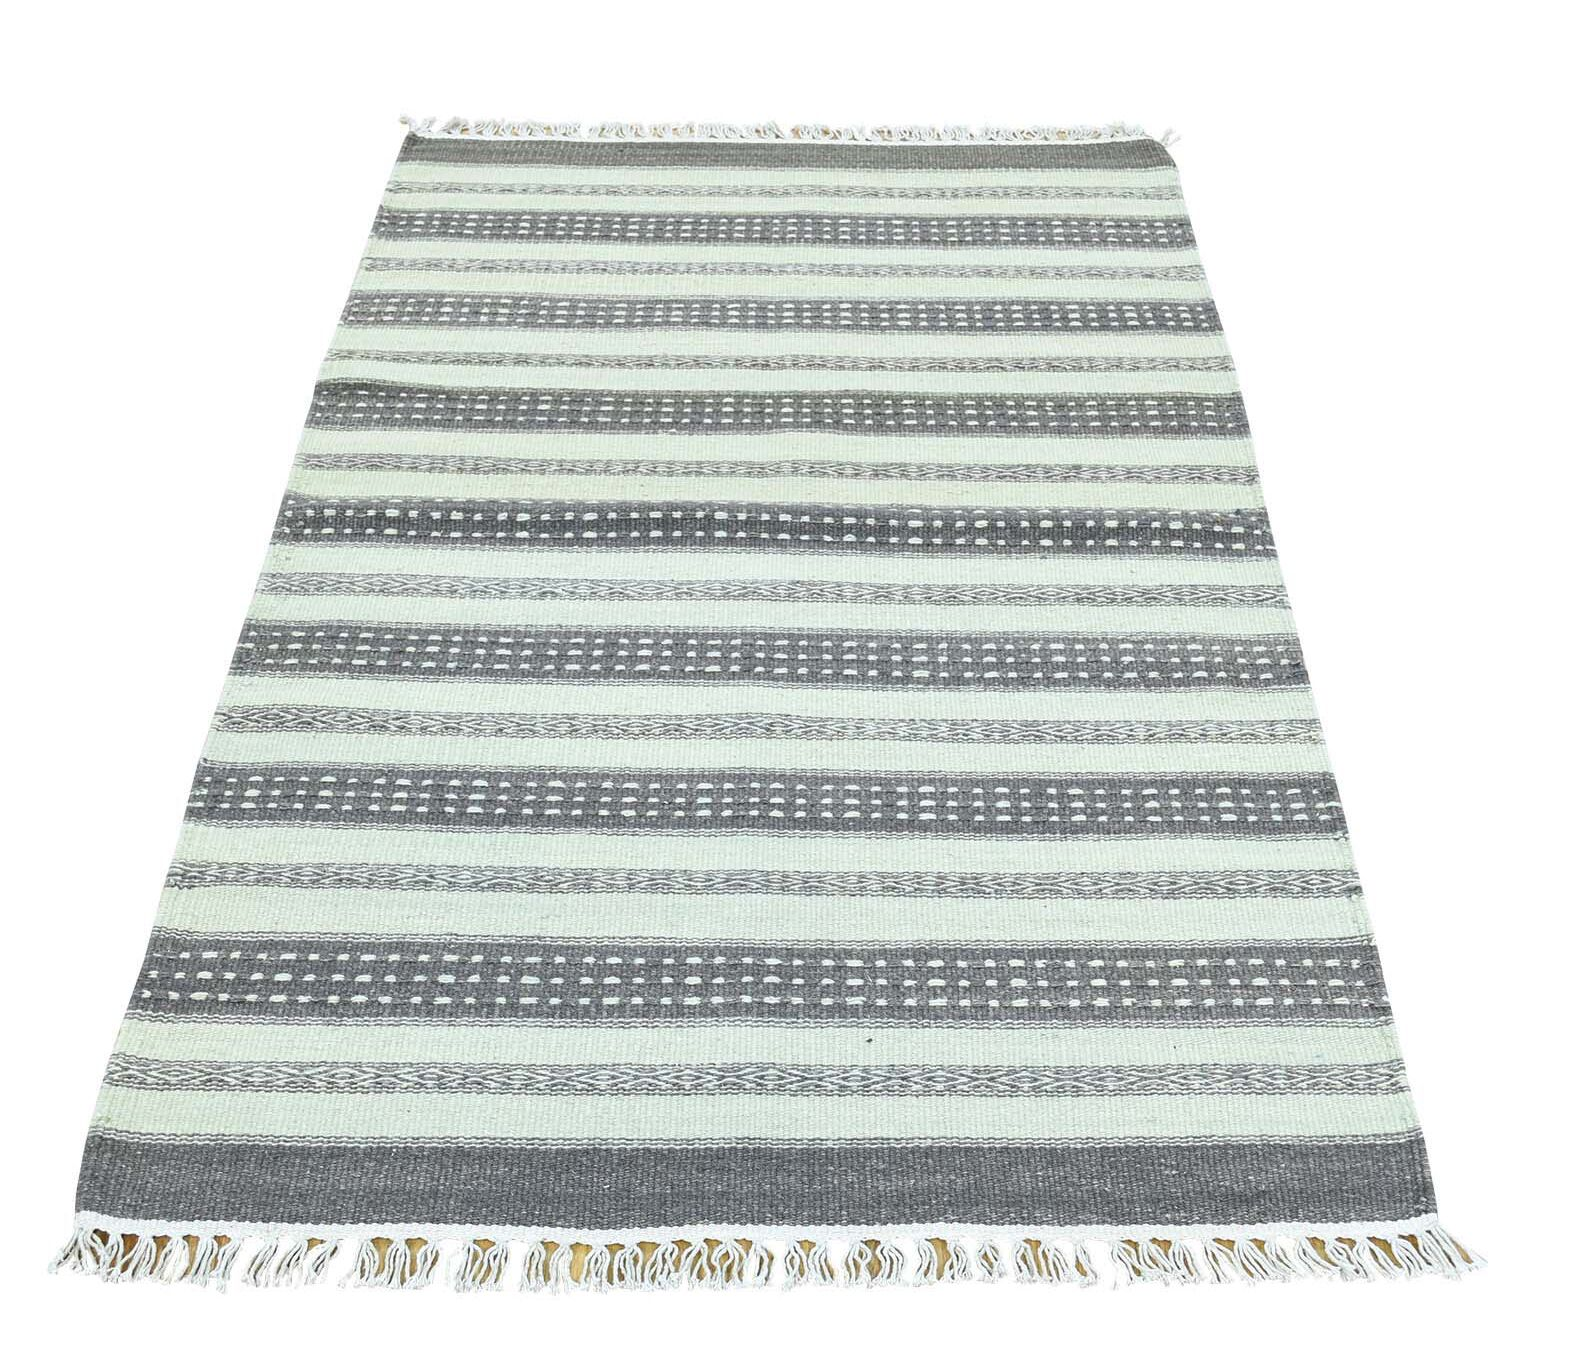 Striped Kilim Flat Weave Oriental Hand-Knotted Gray/White Area Rug